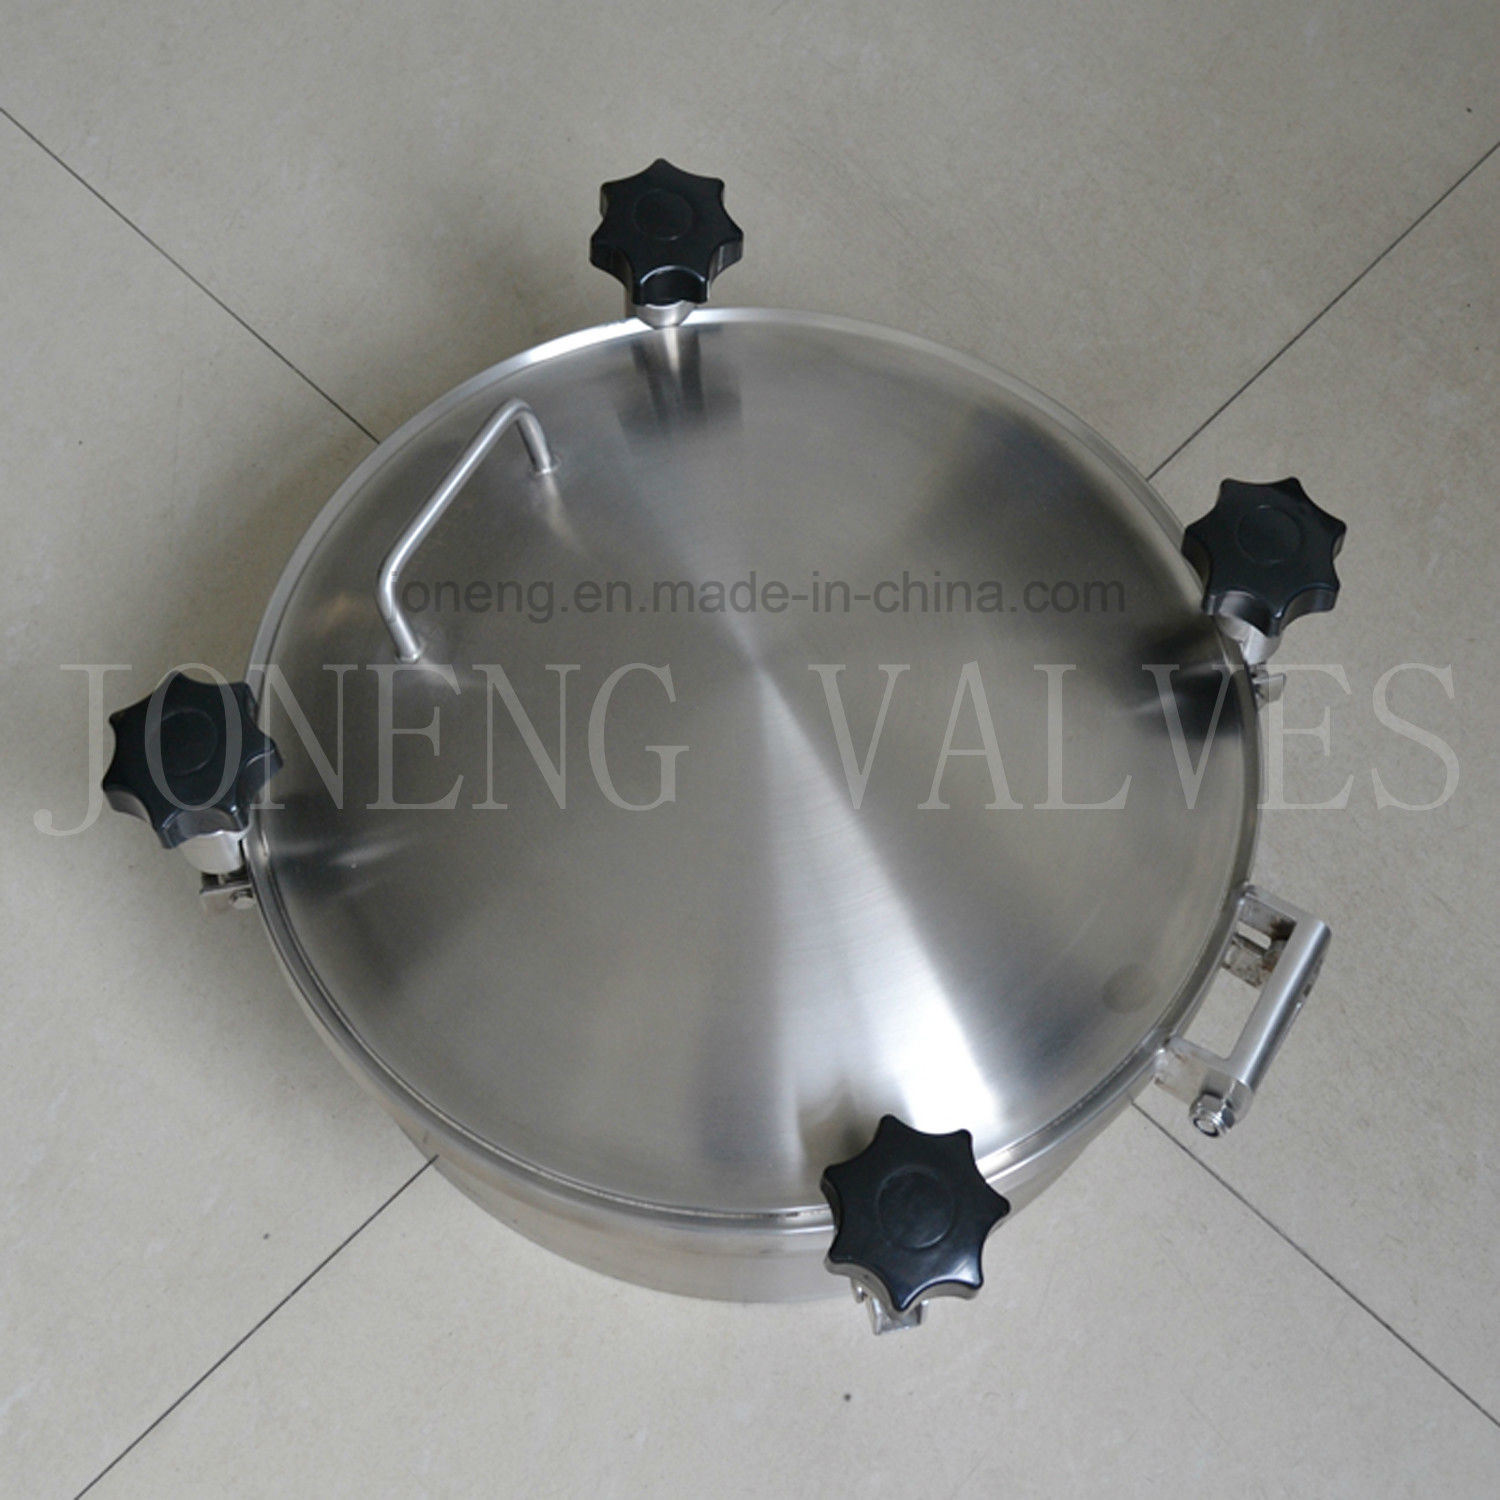 Sanitary Stainless Steel Manyways&Hatch Cover